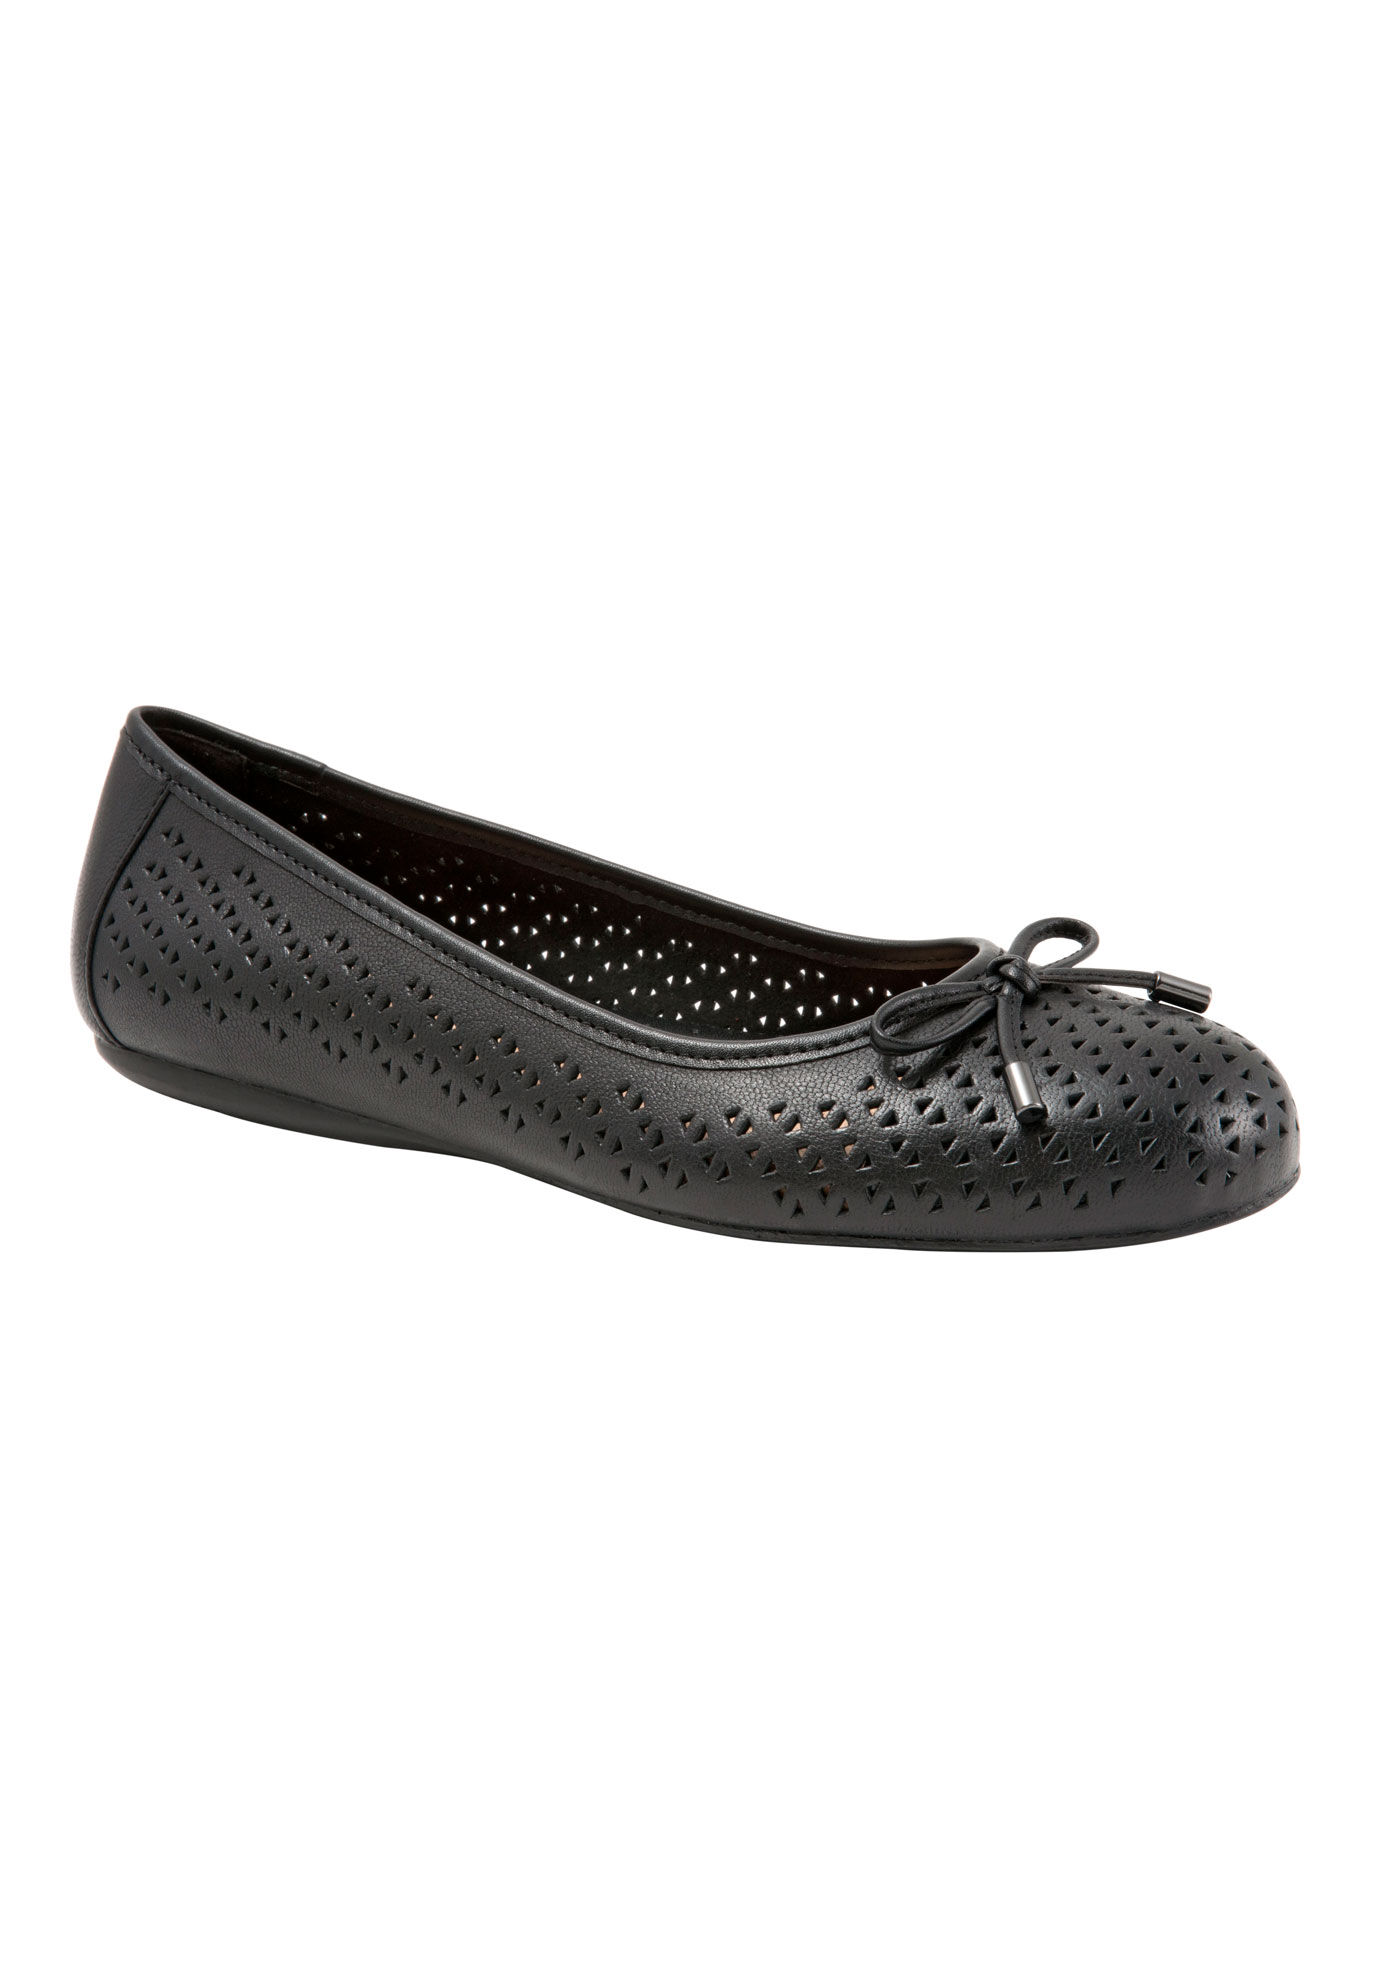 Napa Laser Flats by SoftWalk®